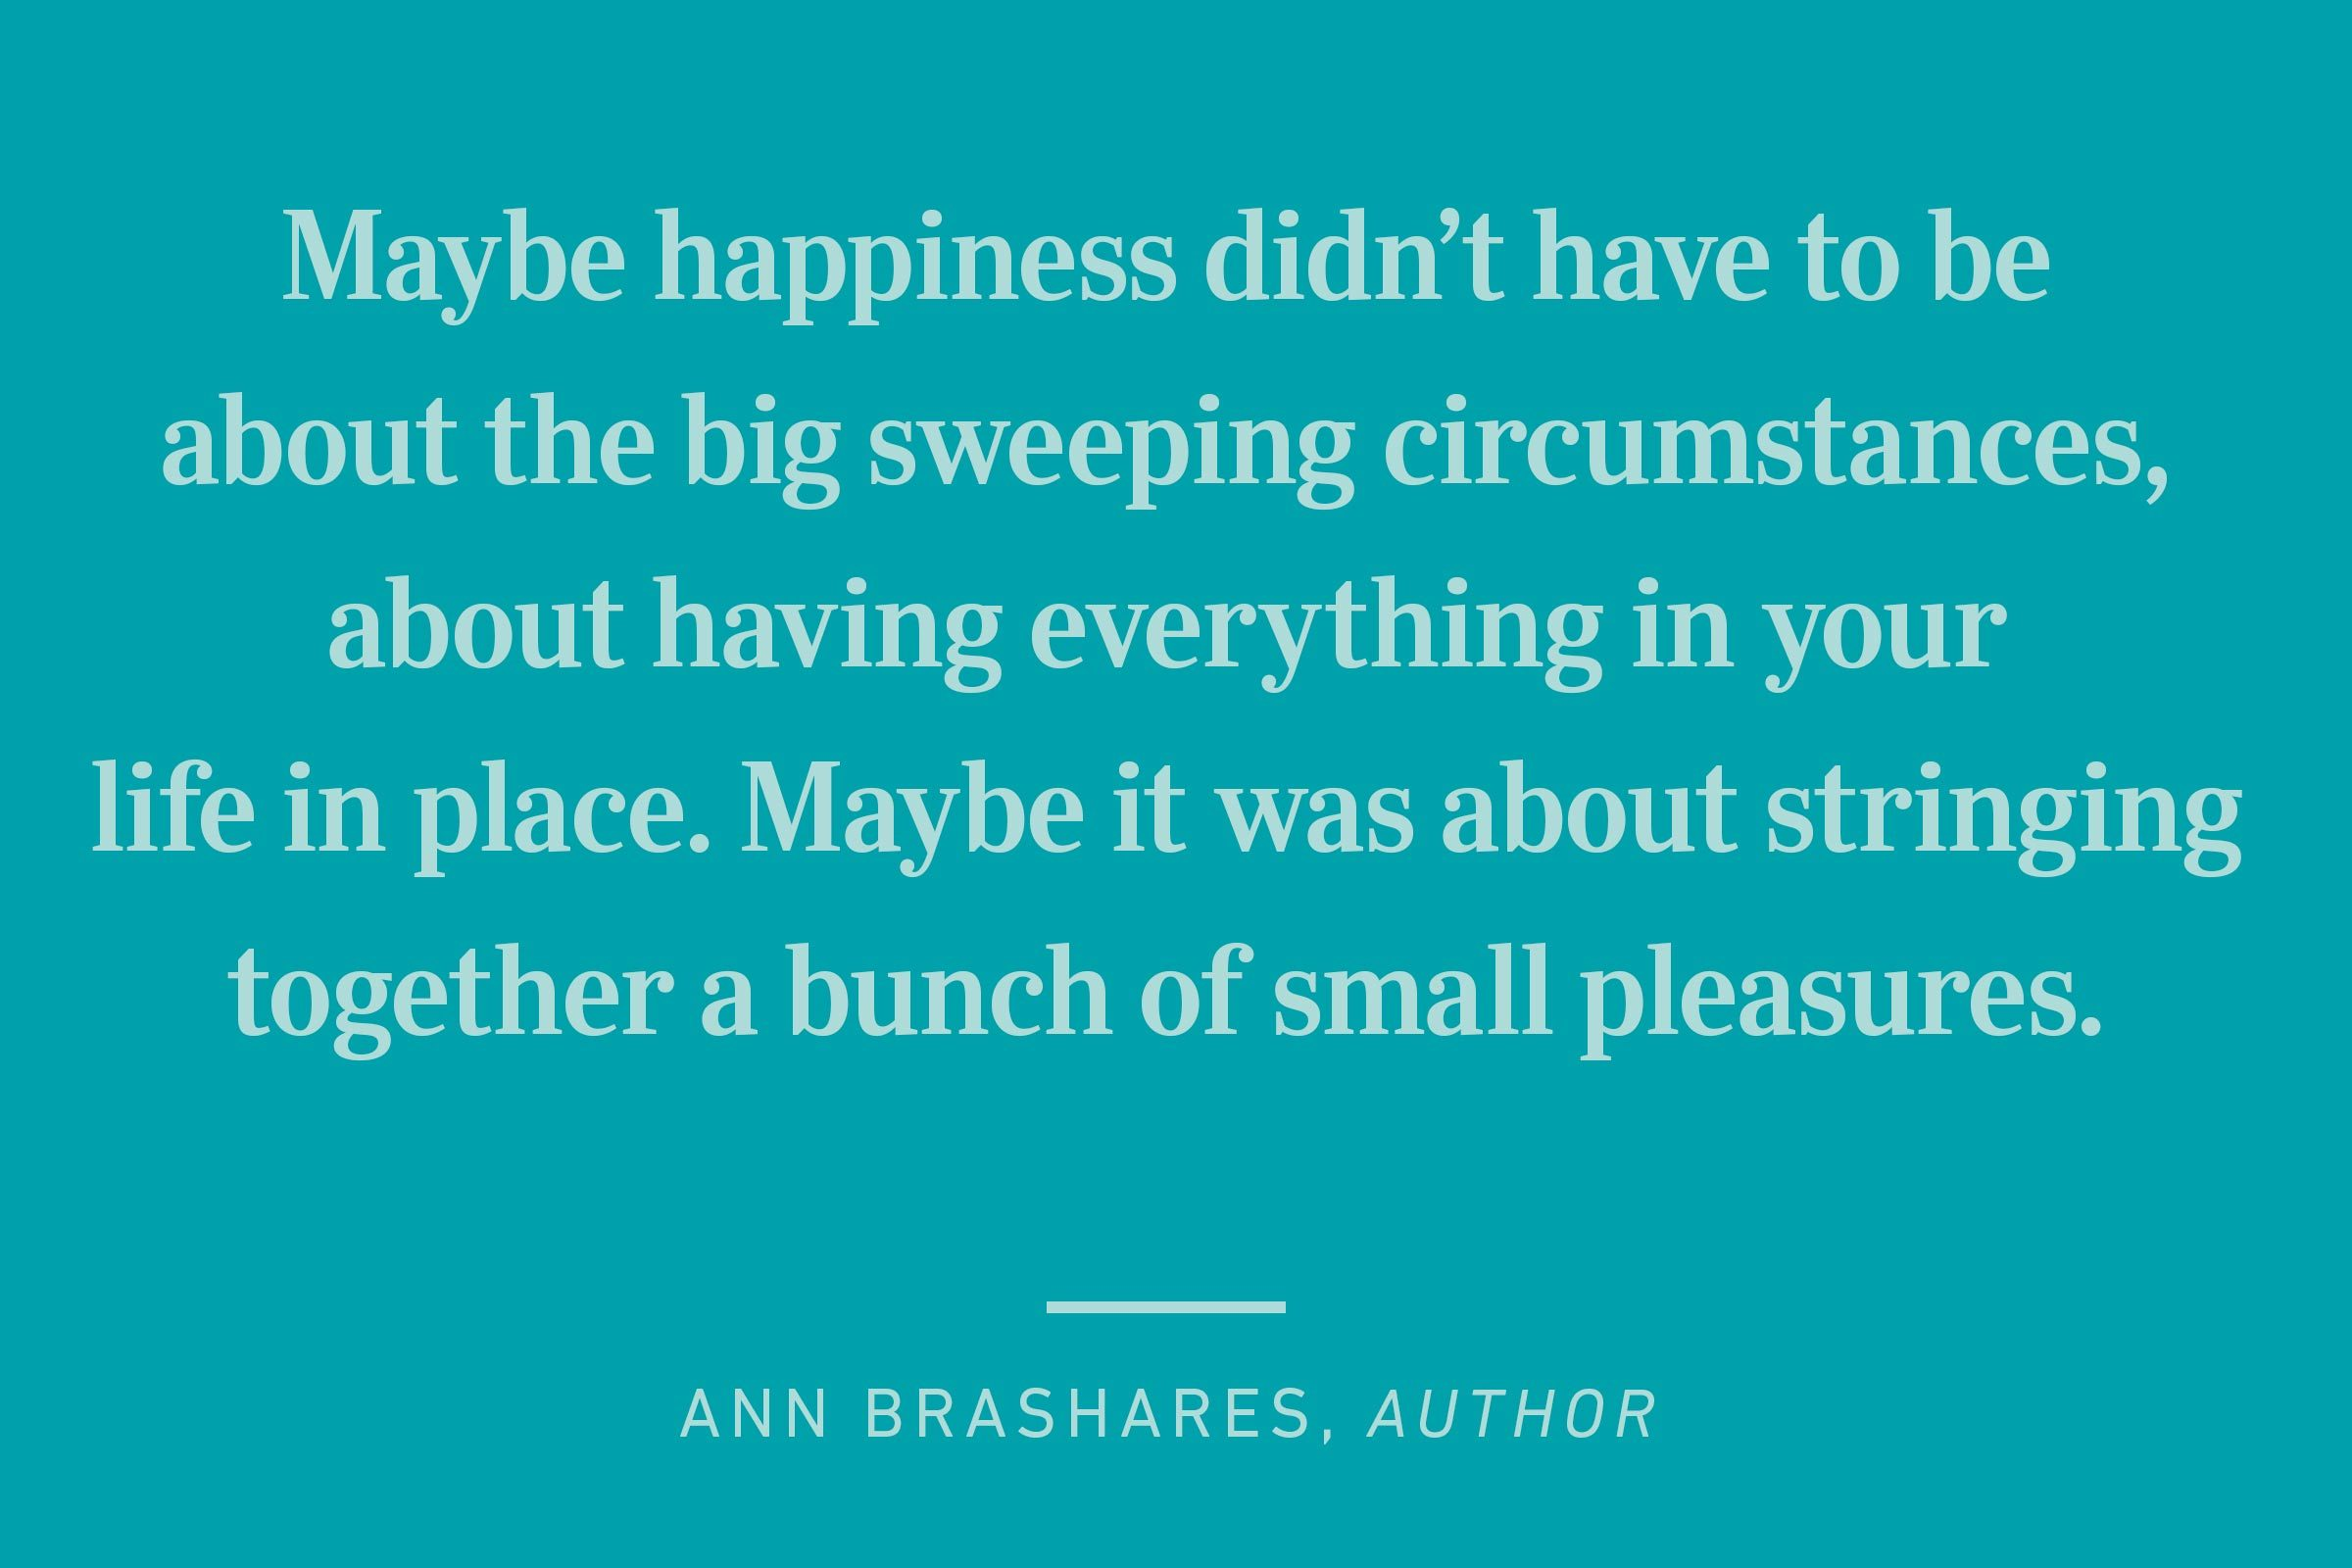 ann brashares happiness quote